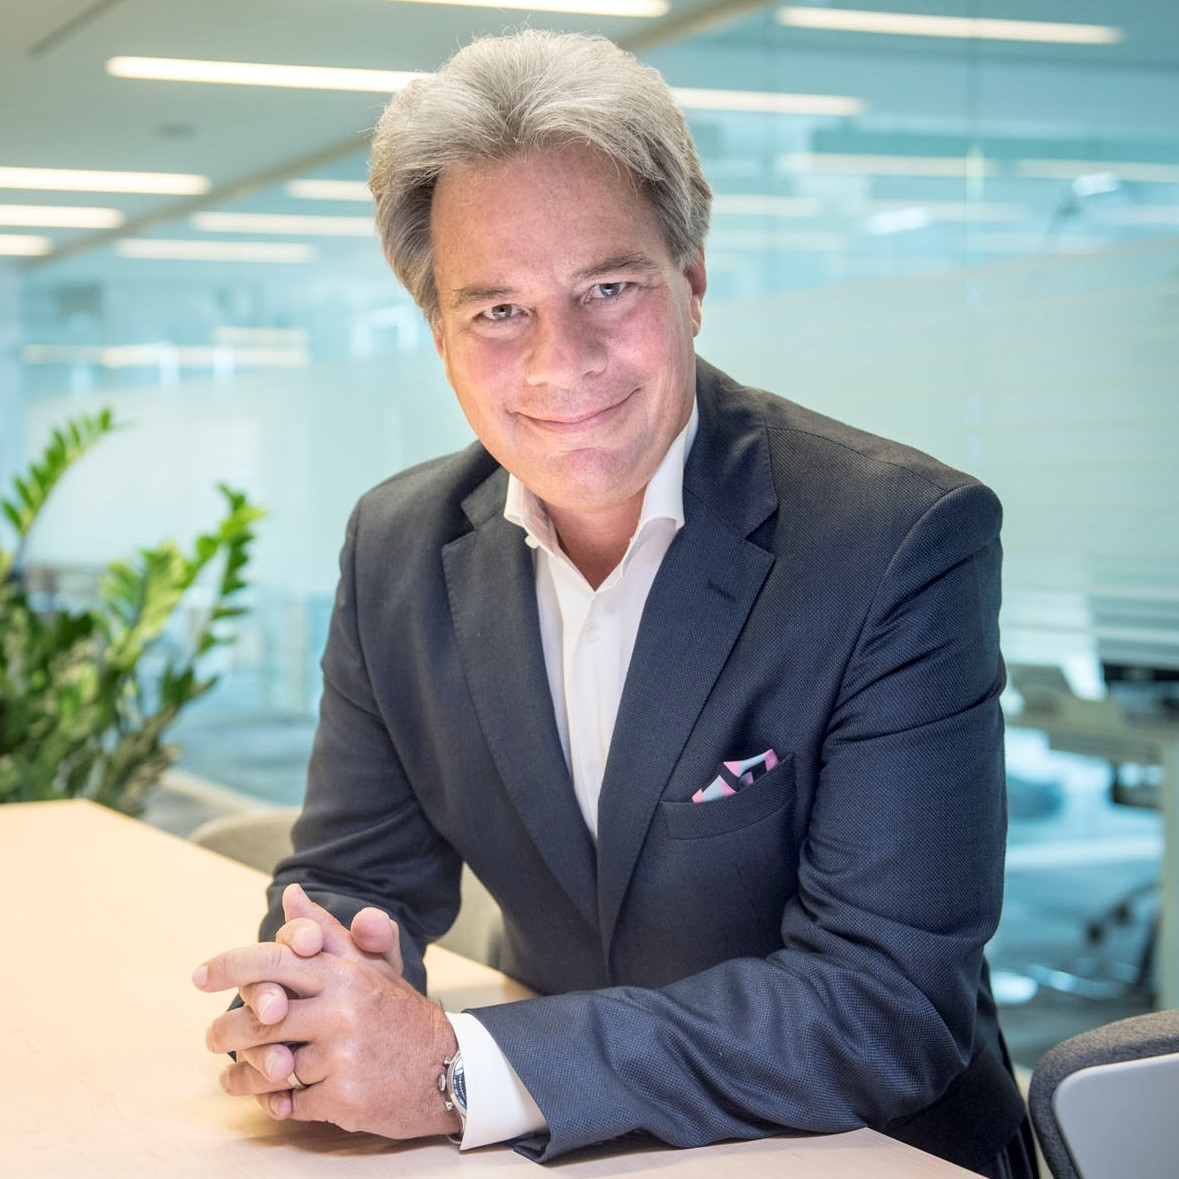 jeffrey Hedberg, Ceo di Wind Tre